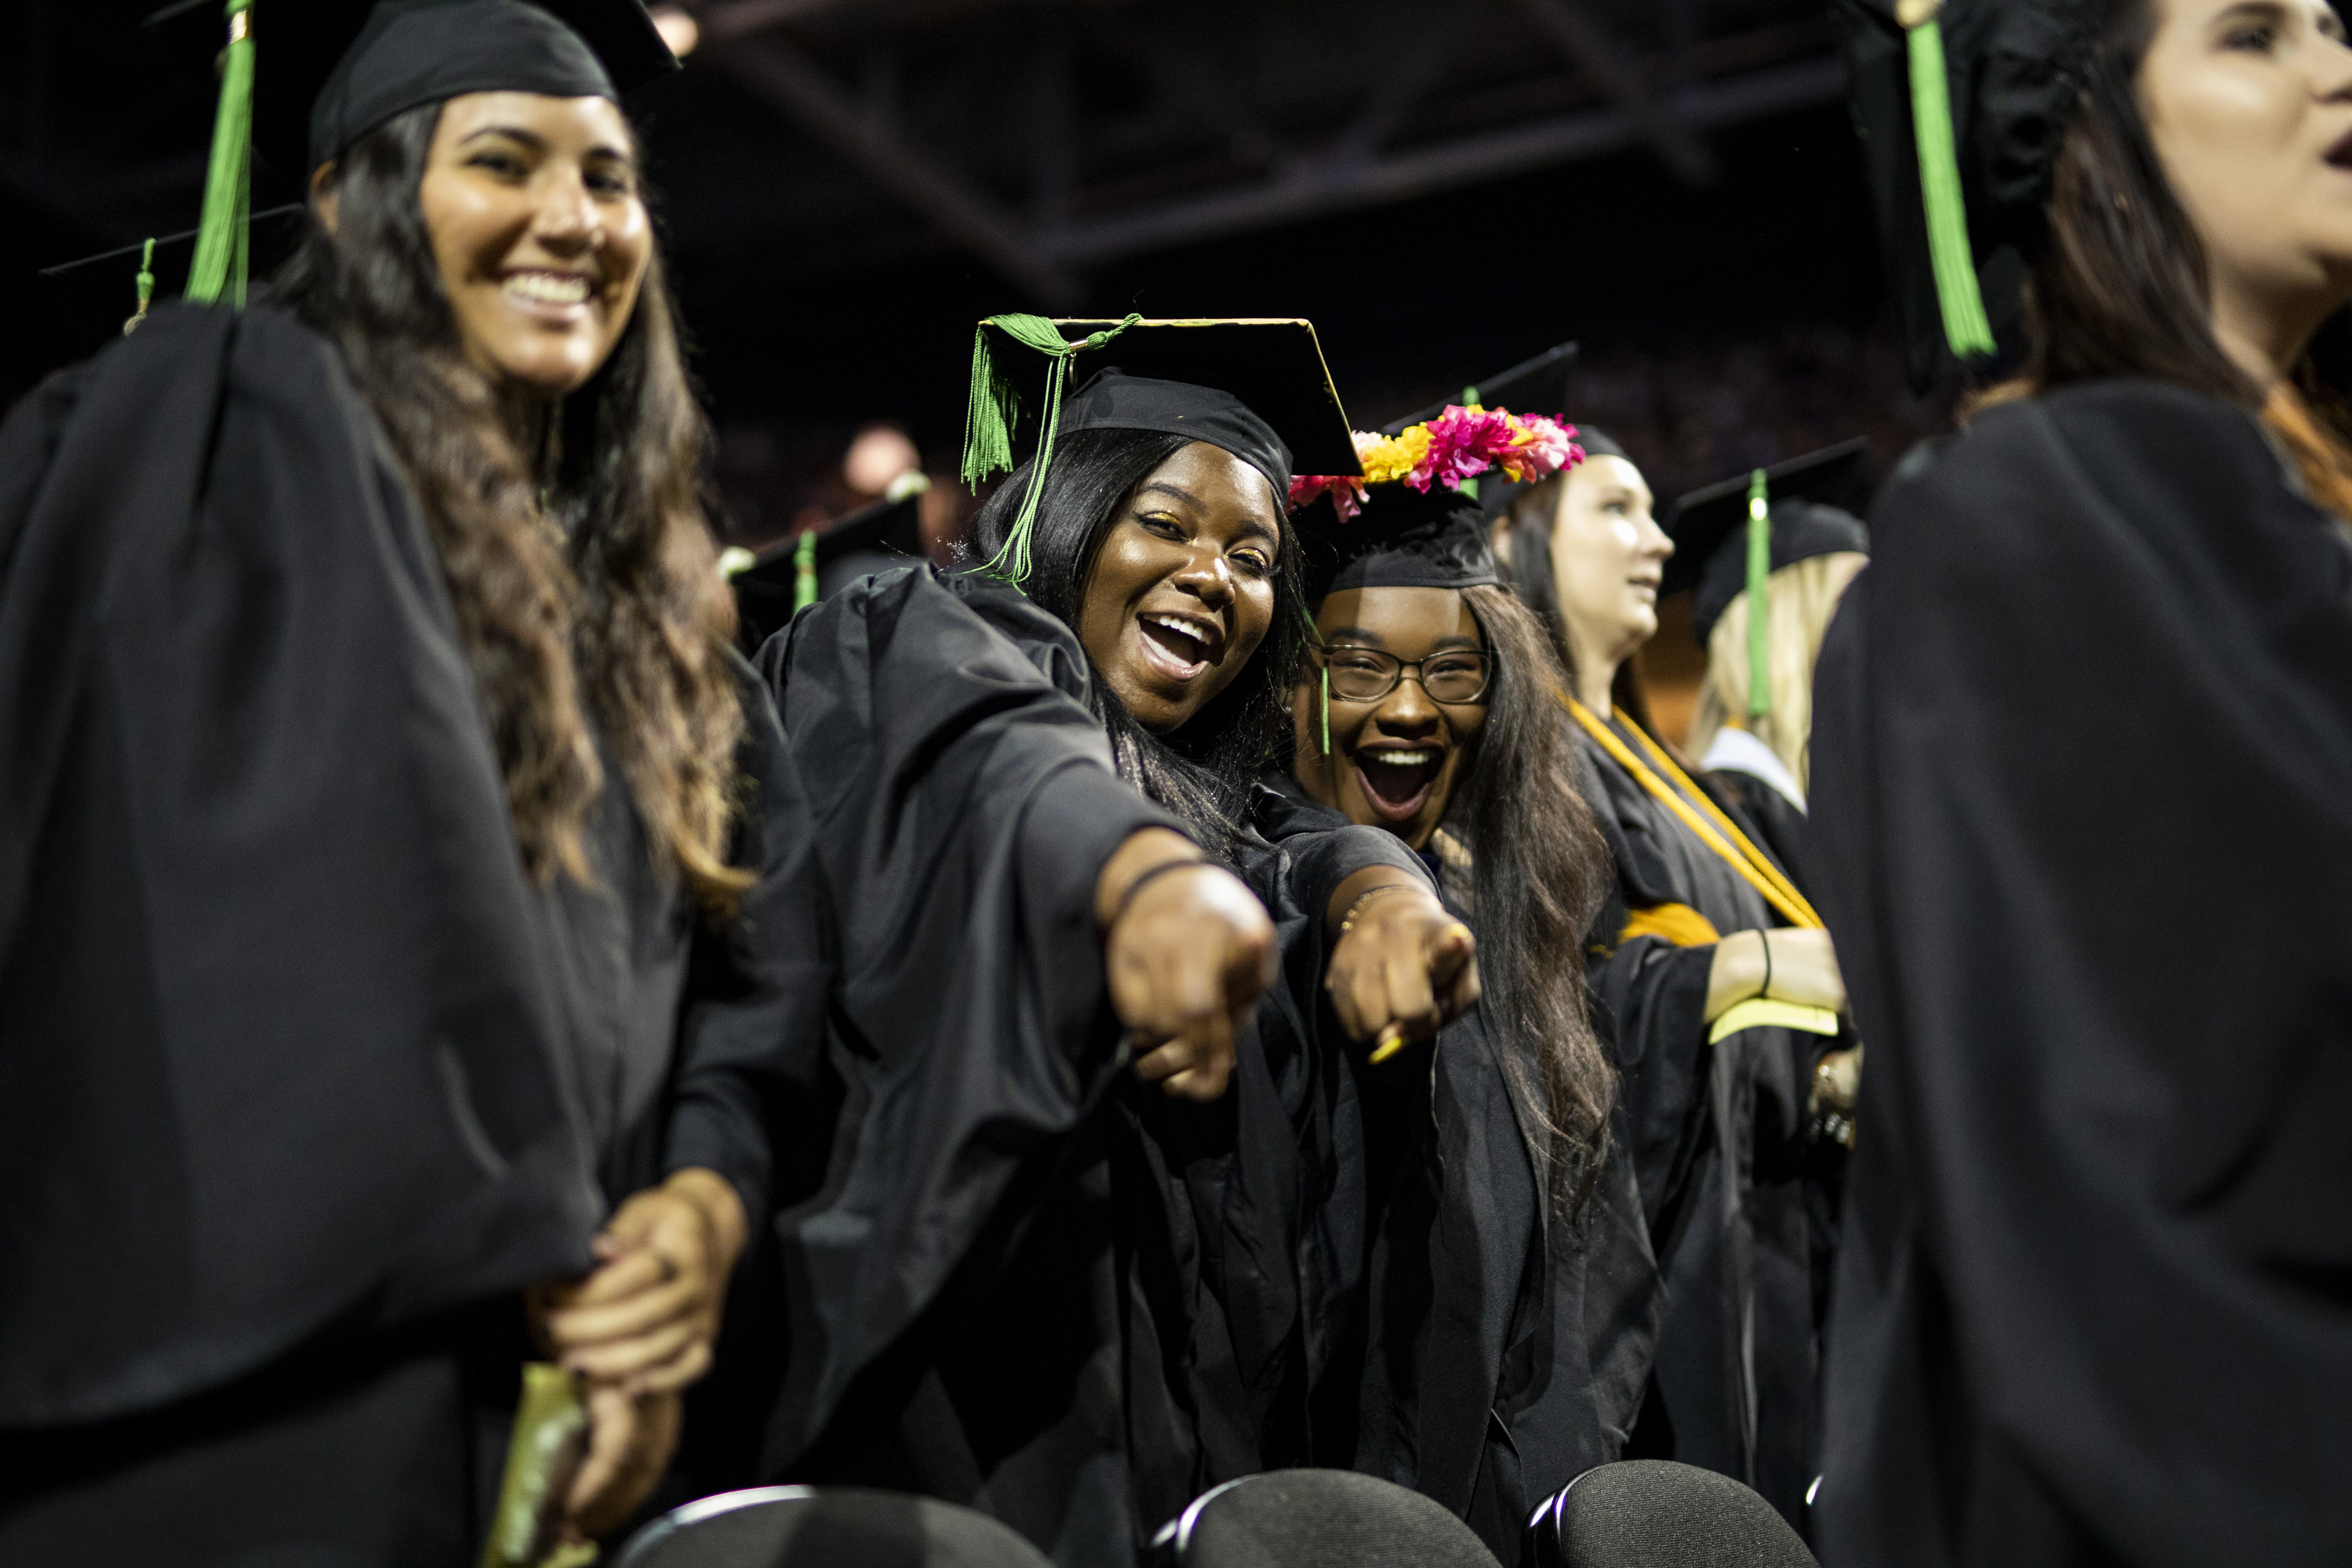 Two students wearing caps and gowns smile and point at the camera during a graduation ceremony.